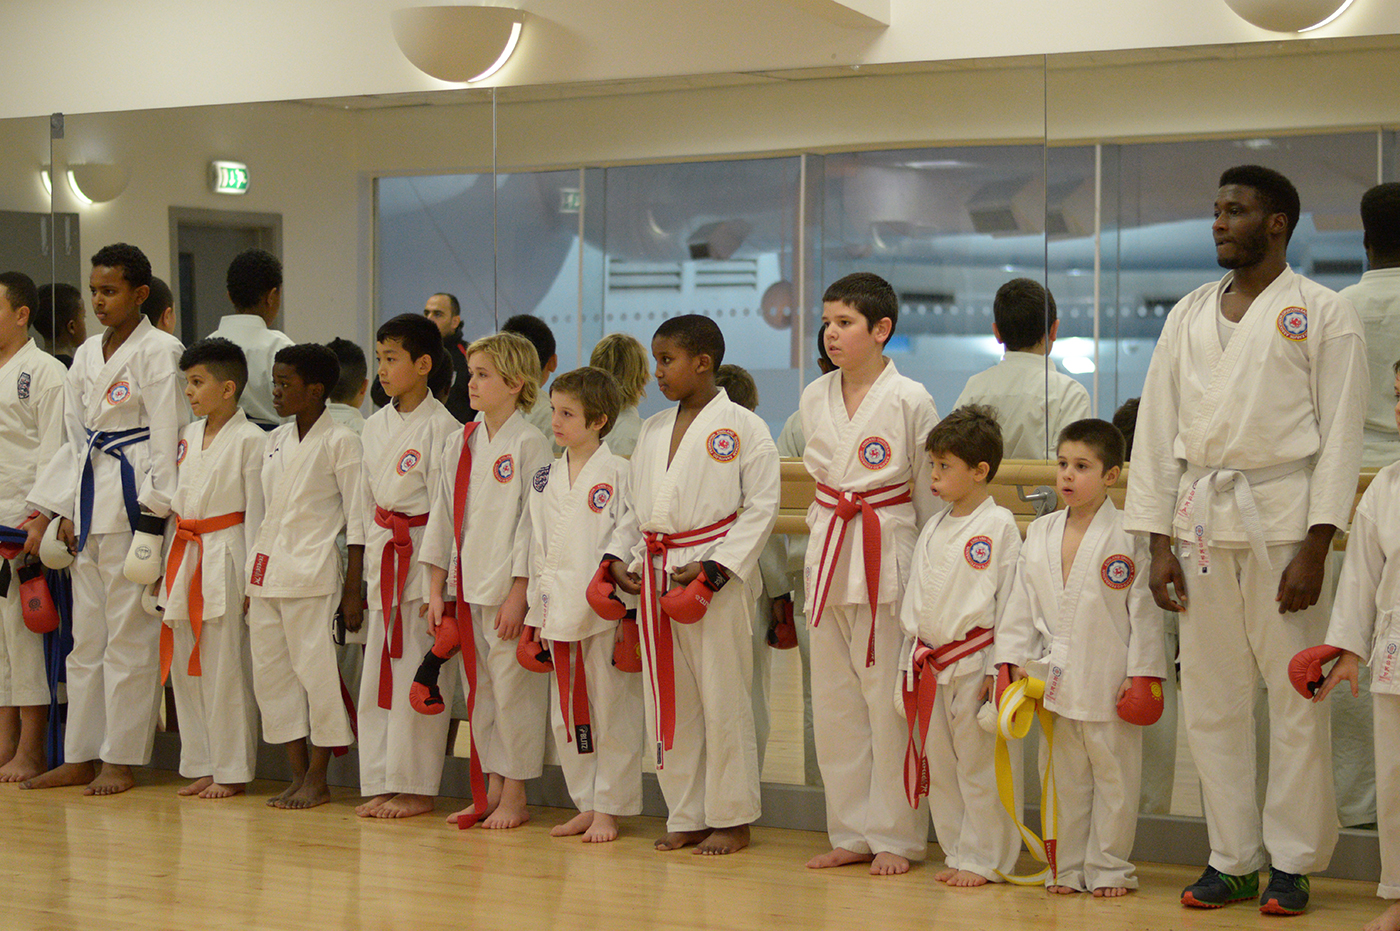 Line up after Grading at Wavelengths Dojo